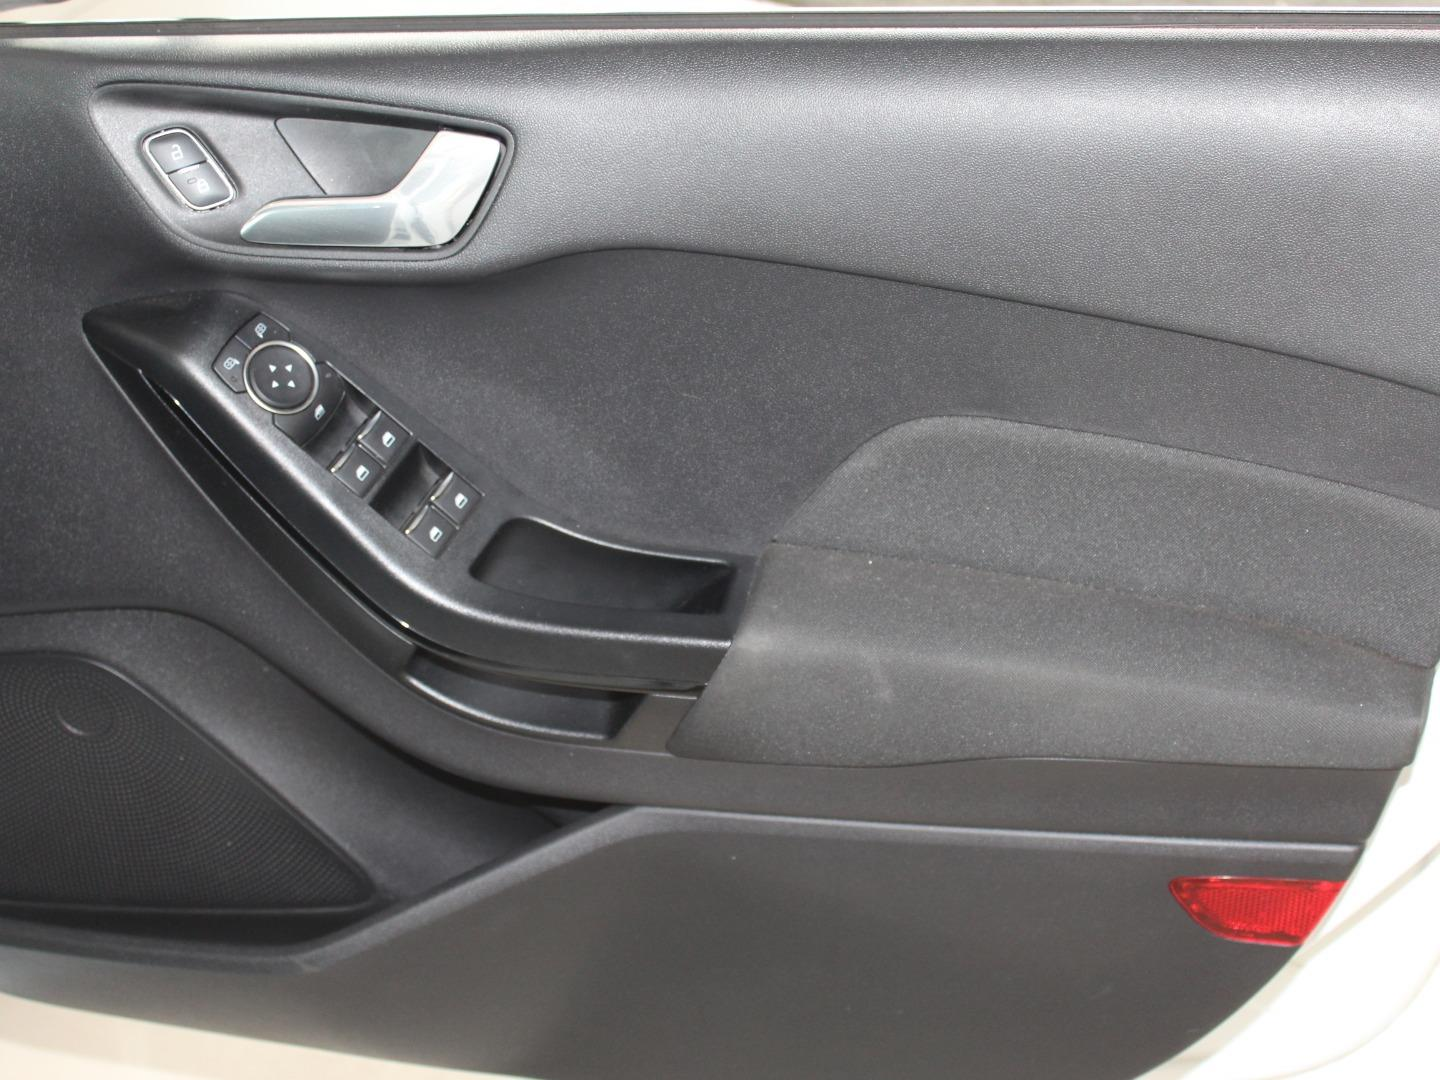 2019 Ford Fiesta 1.0T Trend- Picture 2